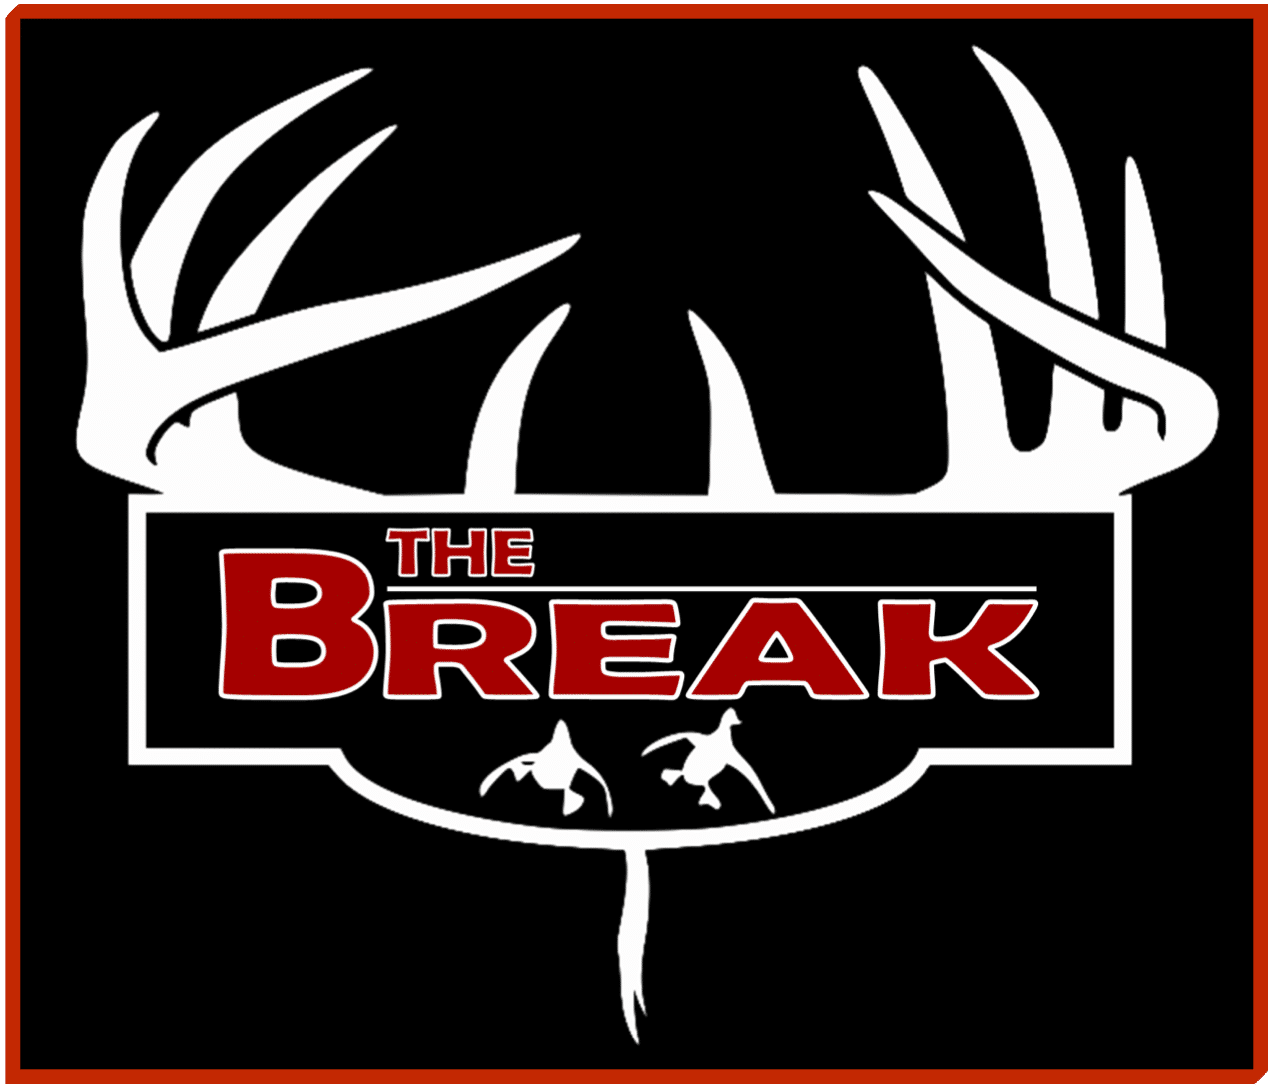 https://i1.wp.com/banksoutdoors.com/wp-content/uploads/2017/08/The-Break-framed-logo-big.png?ssl=1